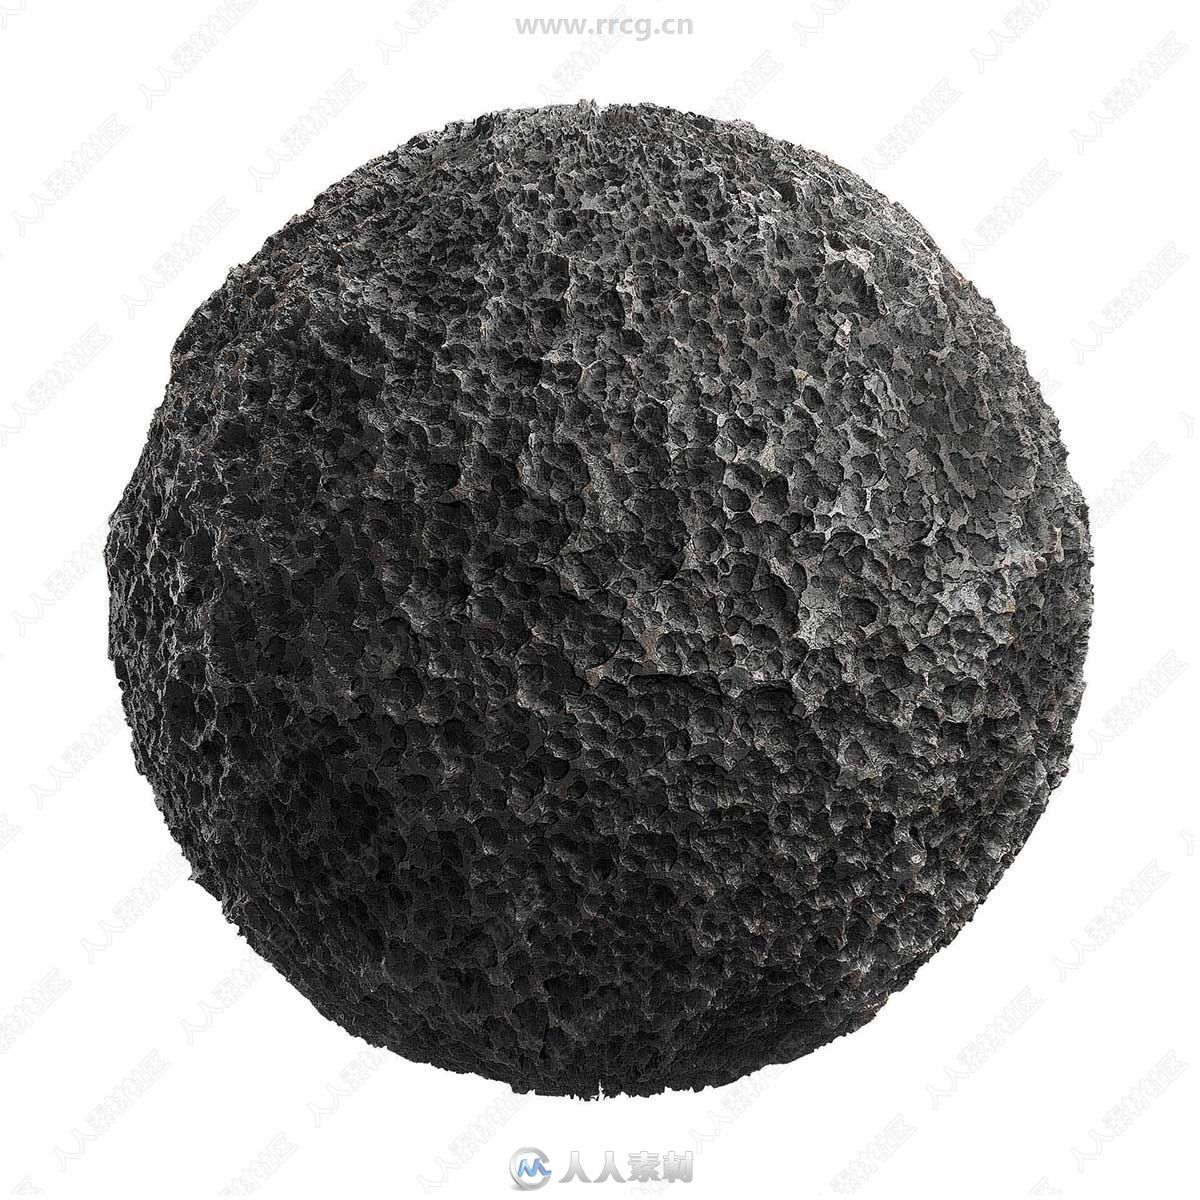 black_volcanic_rock_19_42_render.jpg